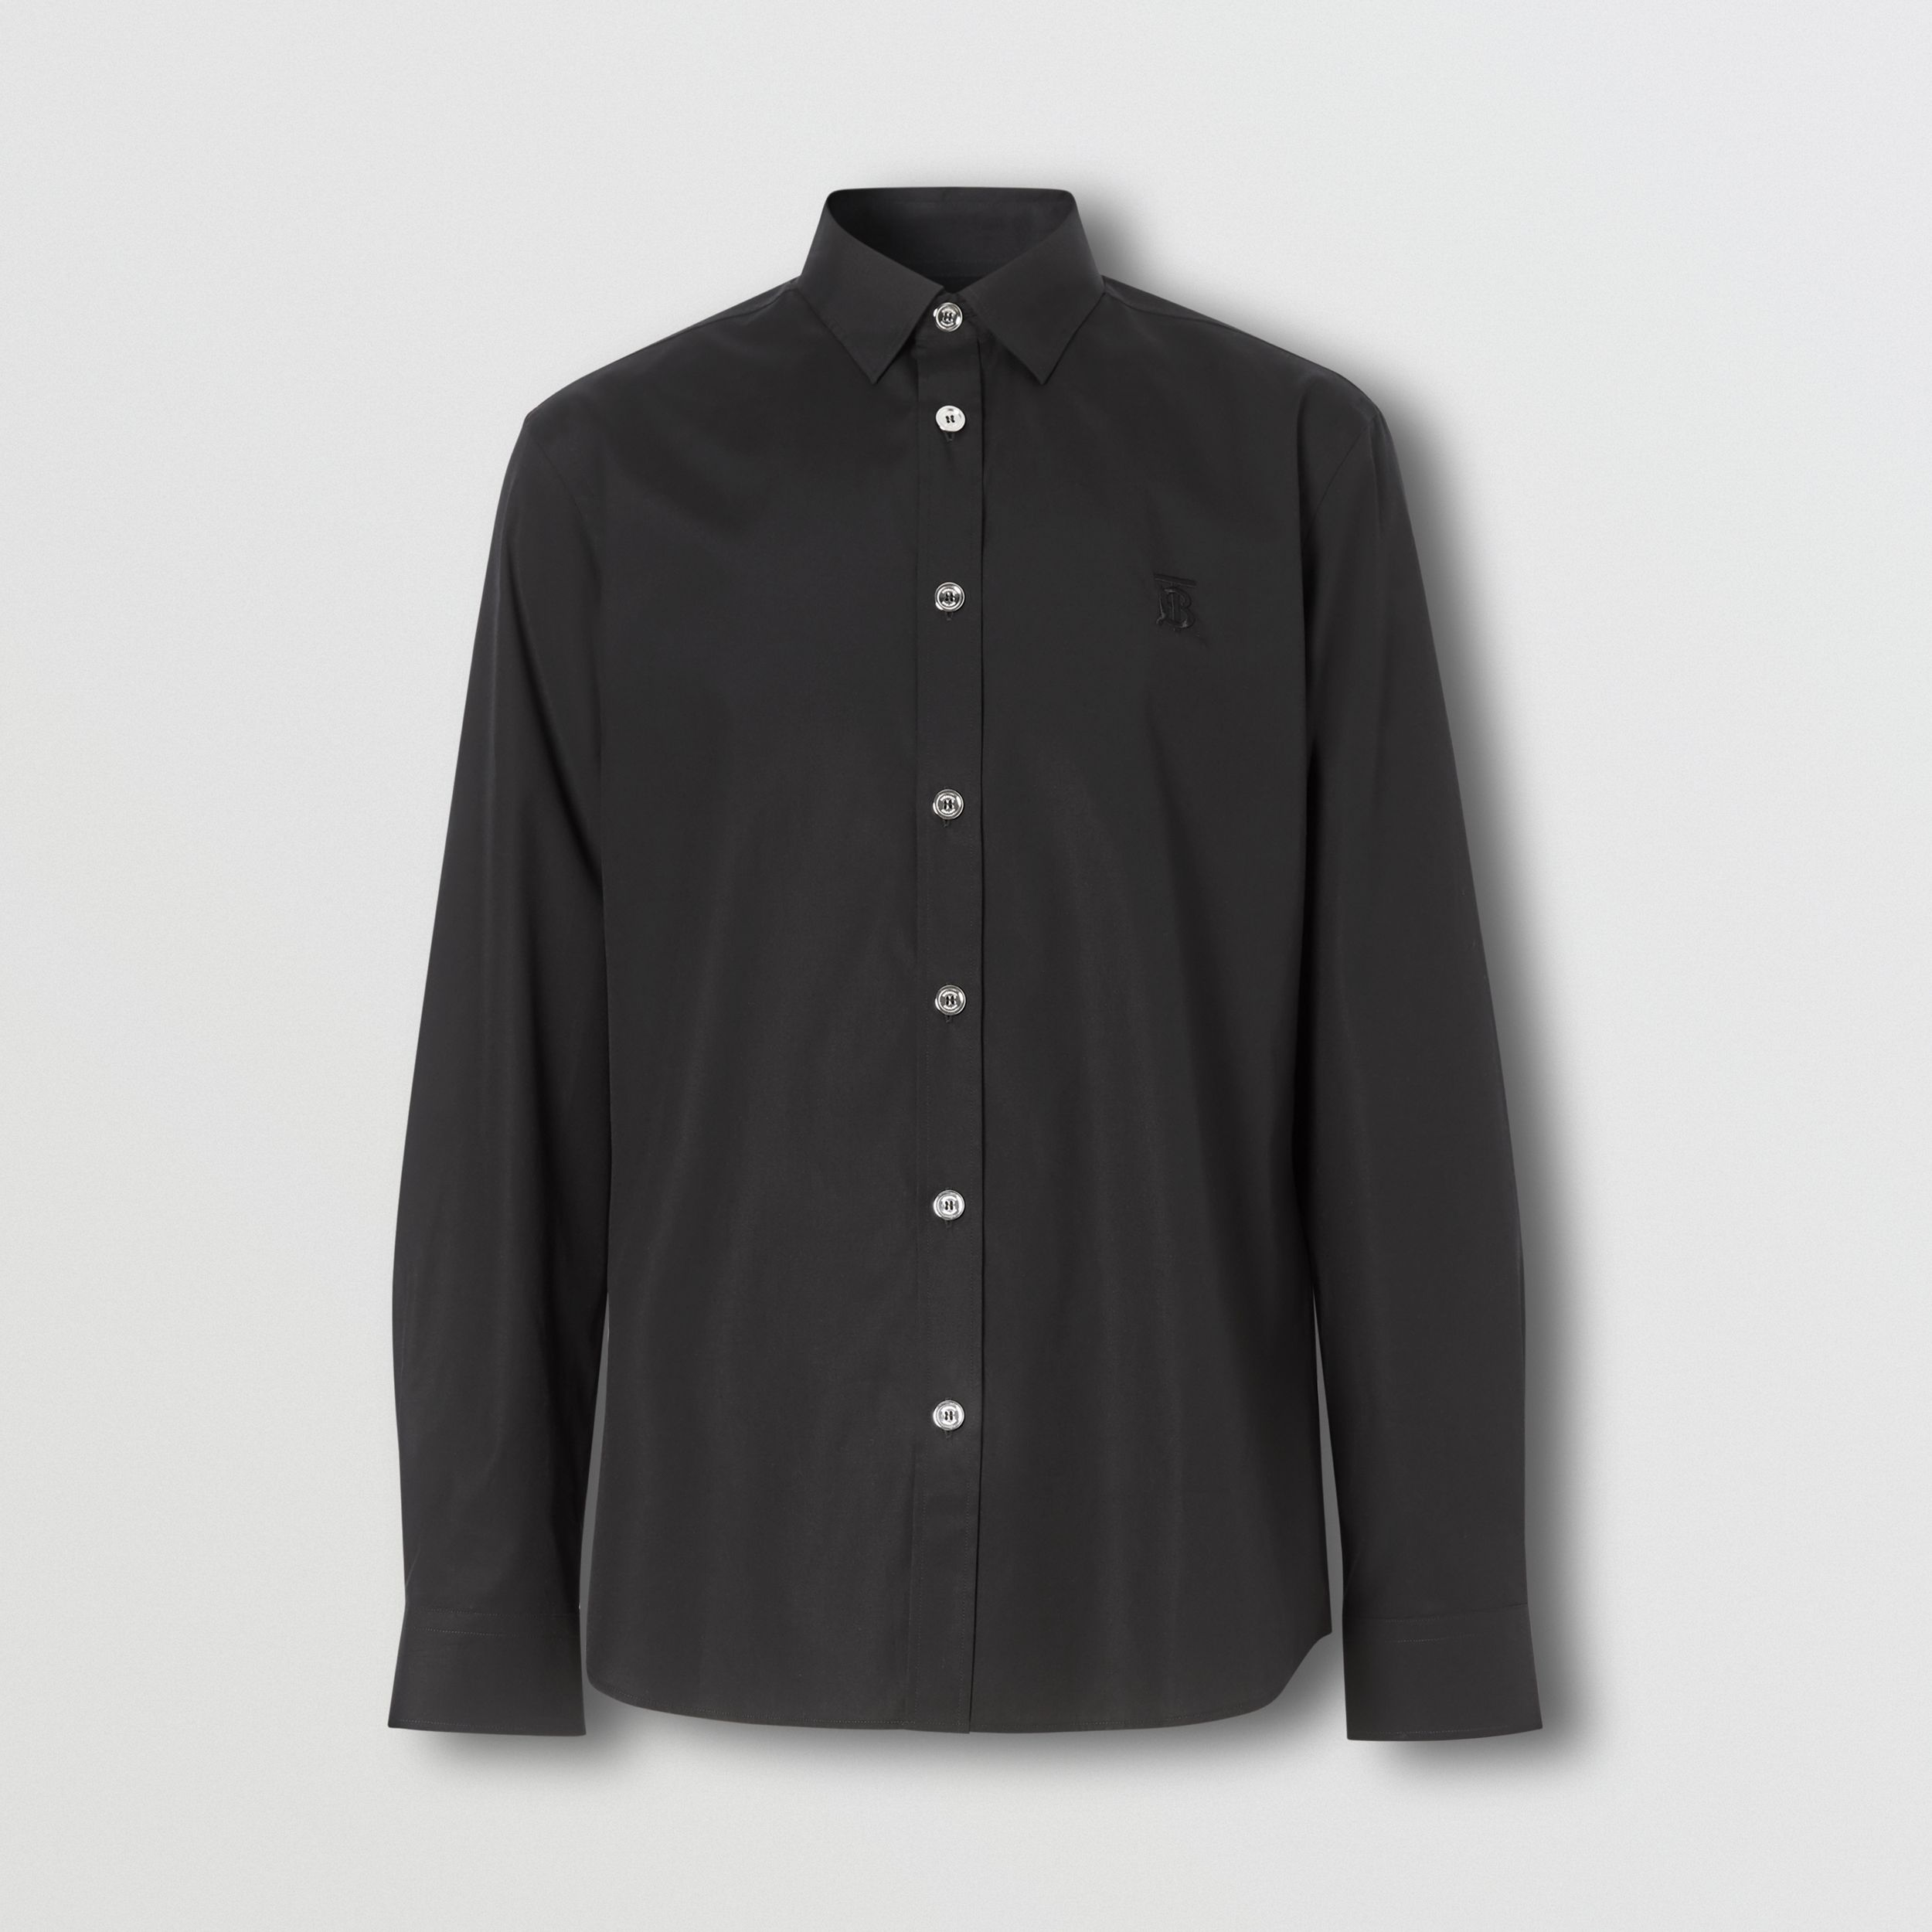 Monogram Motif Stretch Cotton Poplin Shirt in Black - Men | Burberry - 4